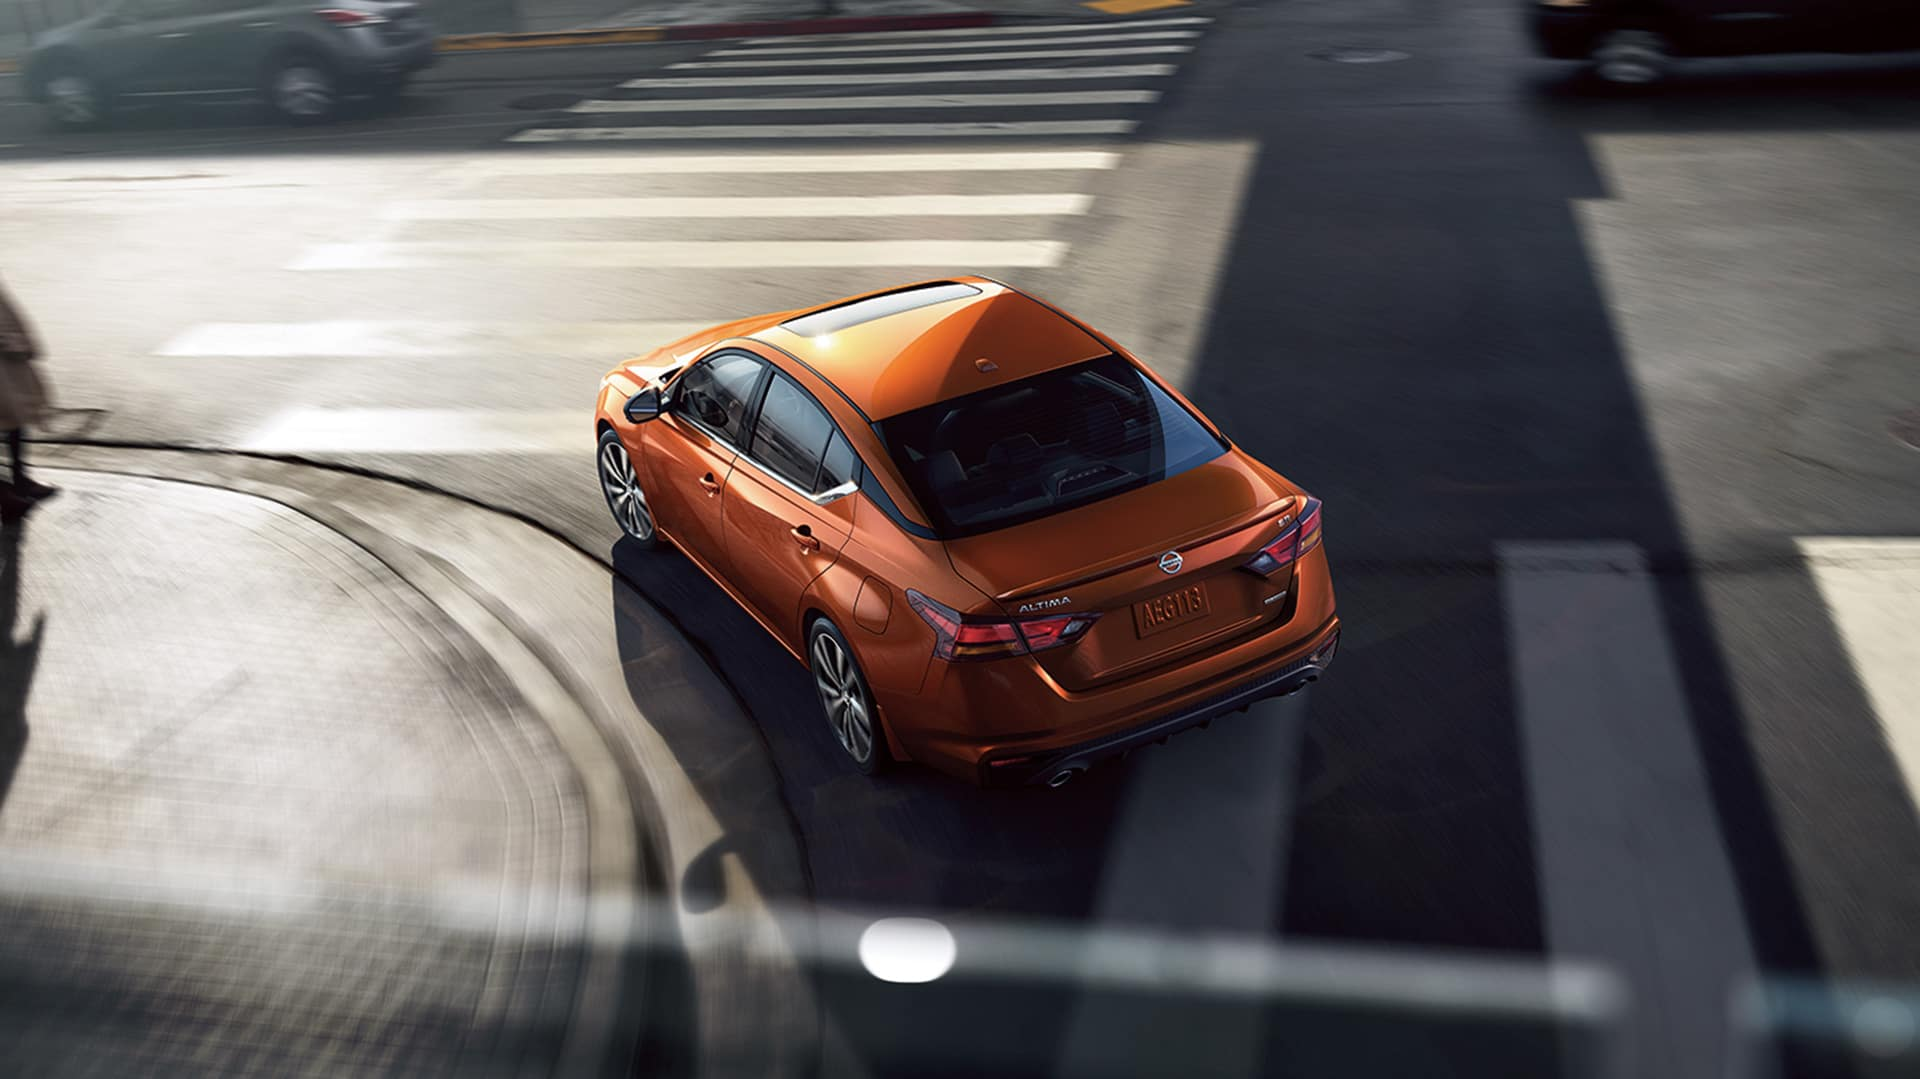 Boch Nissan is a Family Owned Dealership near Stoughton, MA | Orange MY20 Nissan Altima turning on city intersection